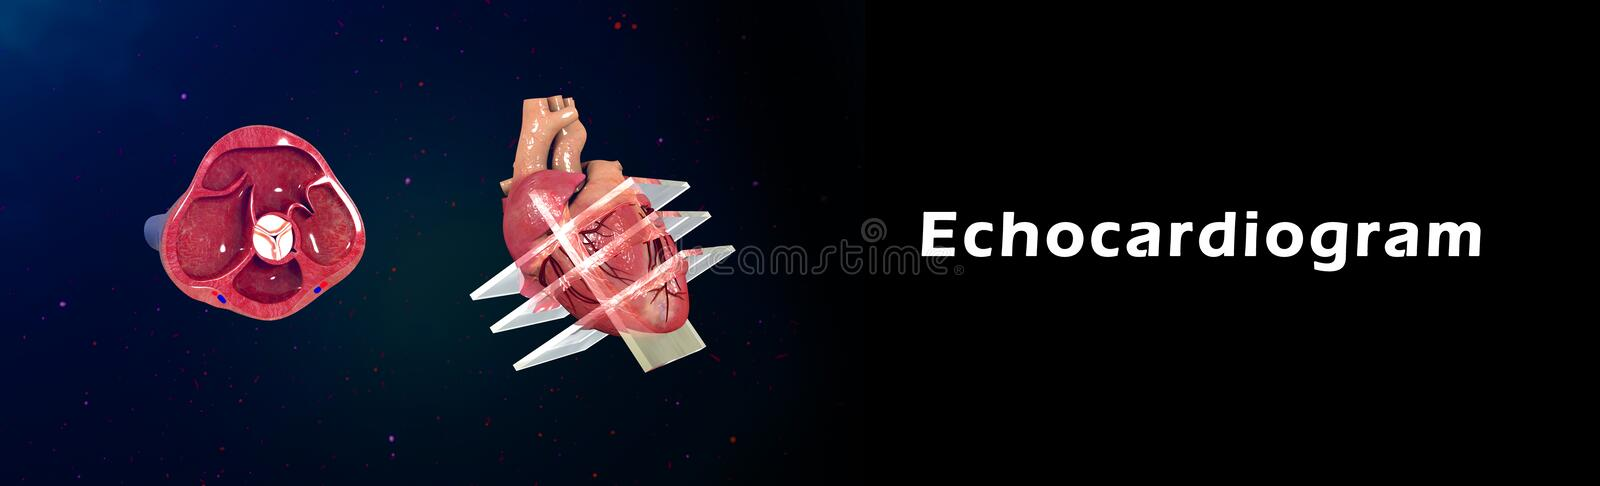 Echocardiogram vector illustratie